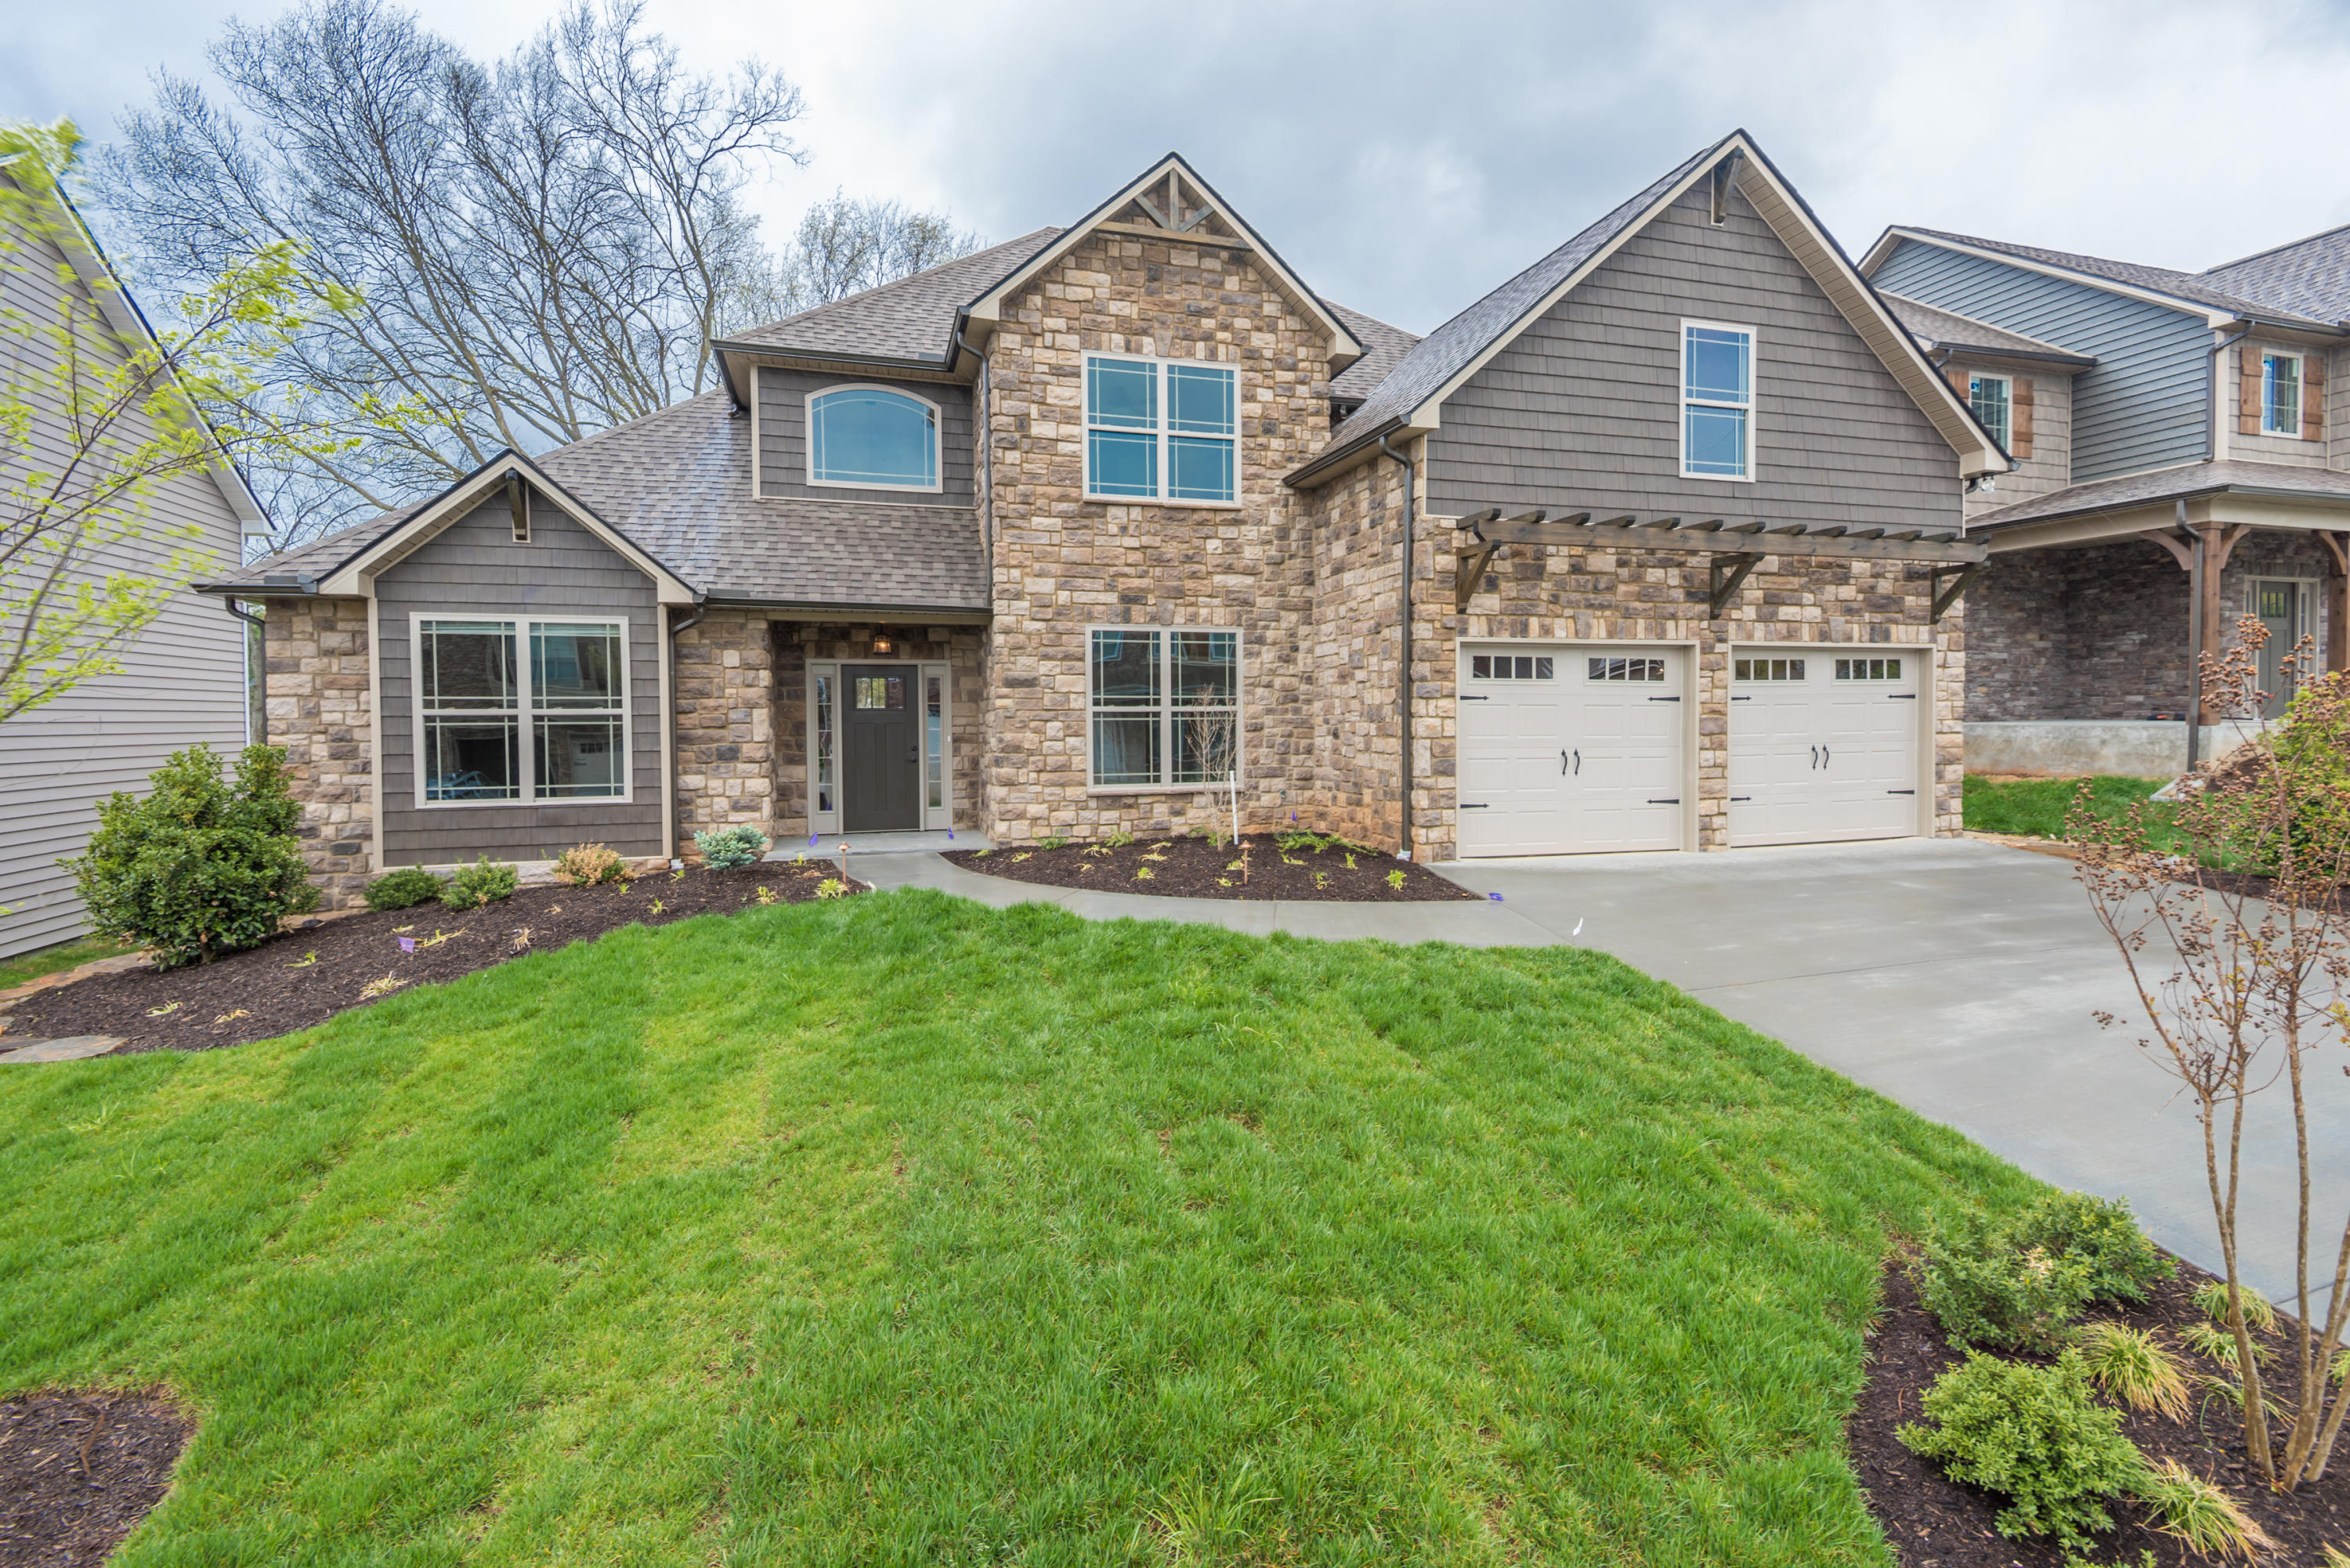 9428 GLADIATOR LANE, LOT 14, KNOXVILLE, TN 37922